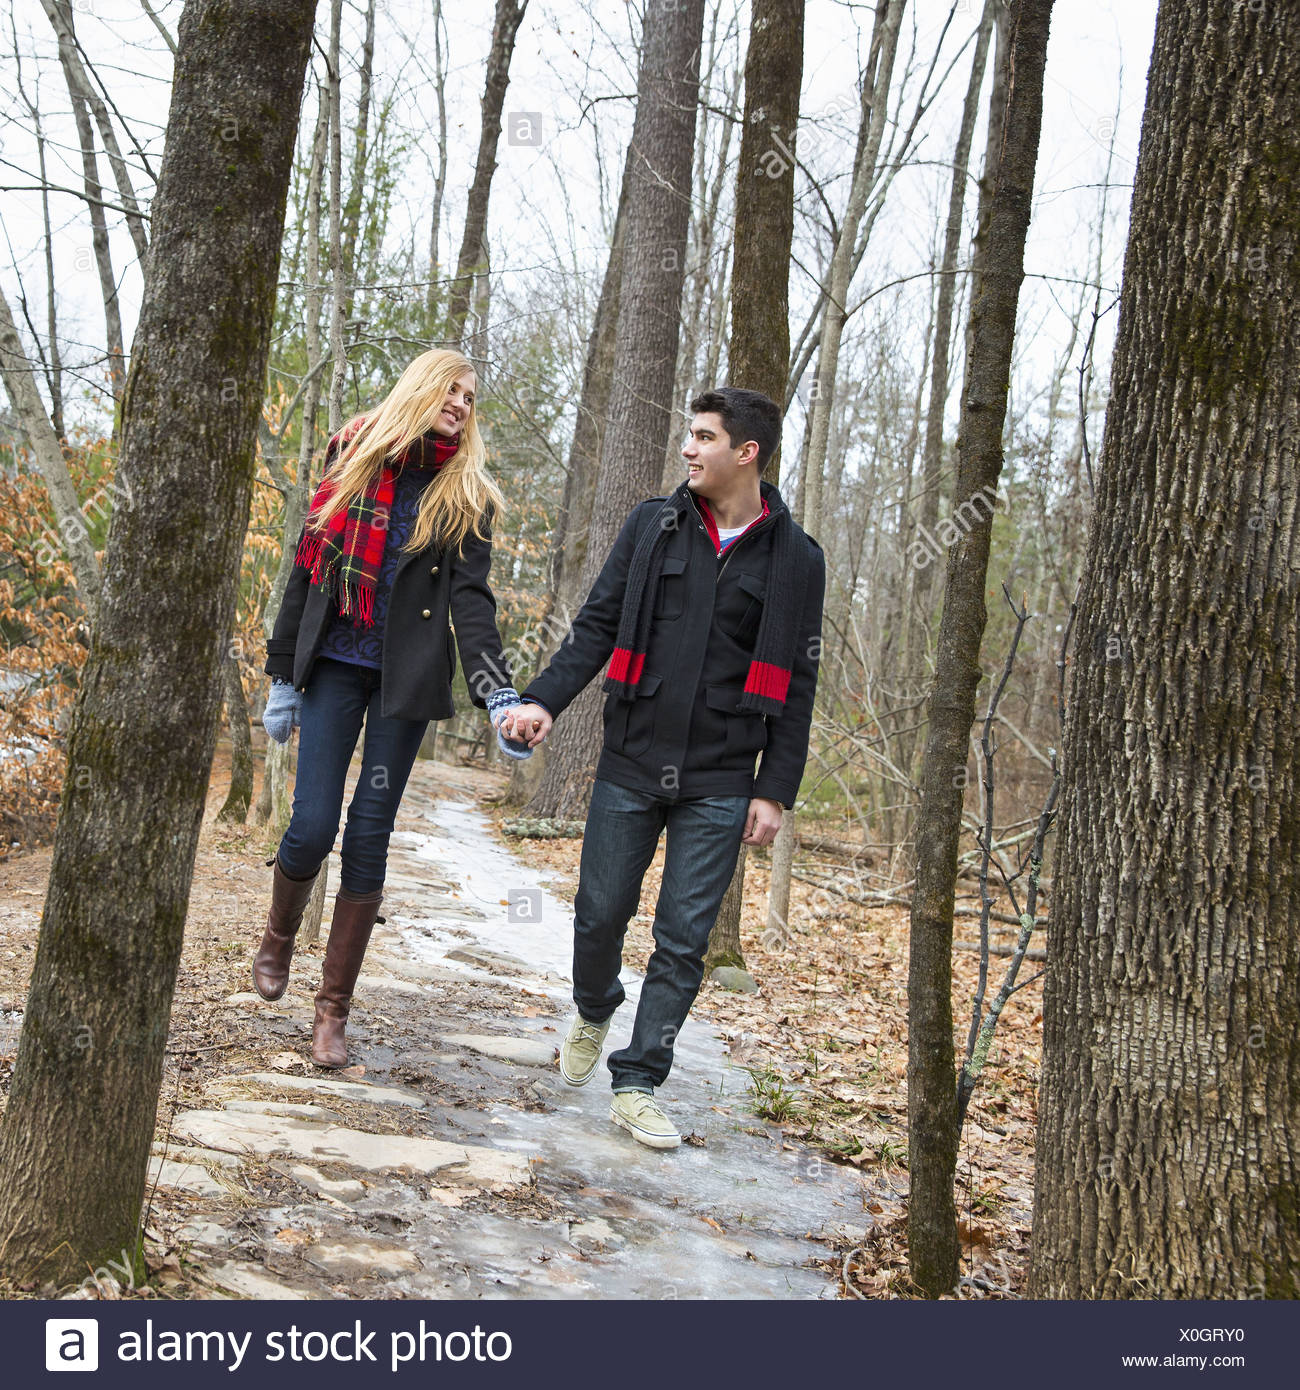 A couple walking hand in hand through a woodland in winter. - Stock Image